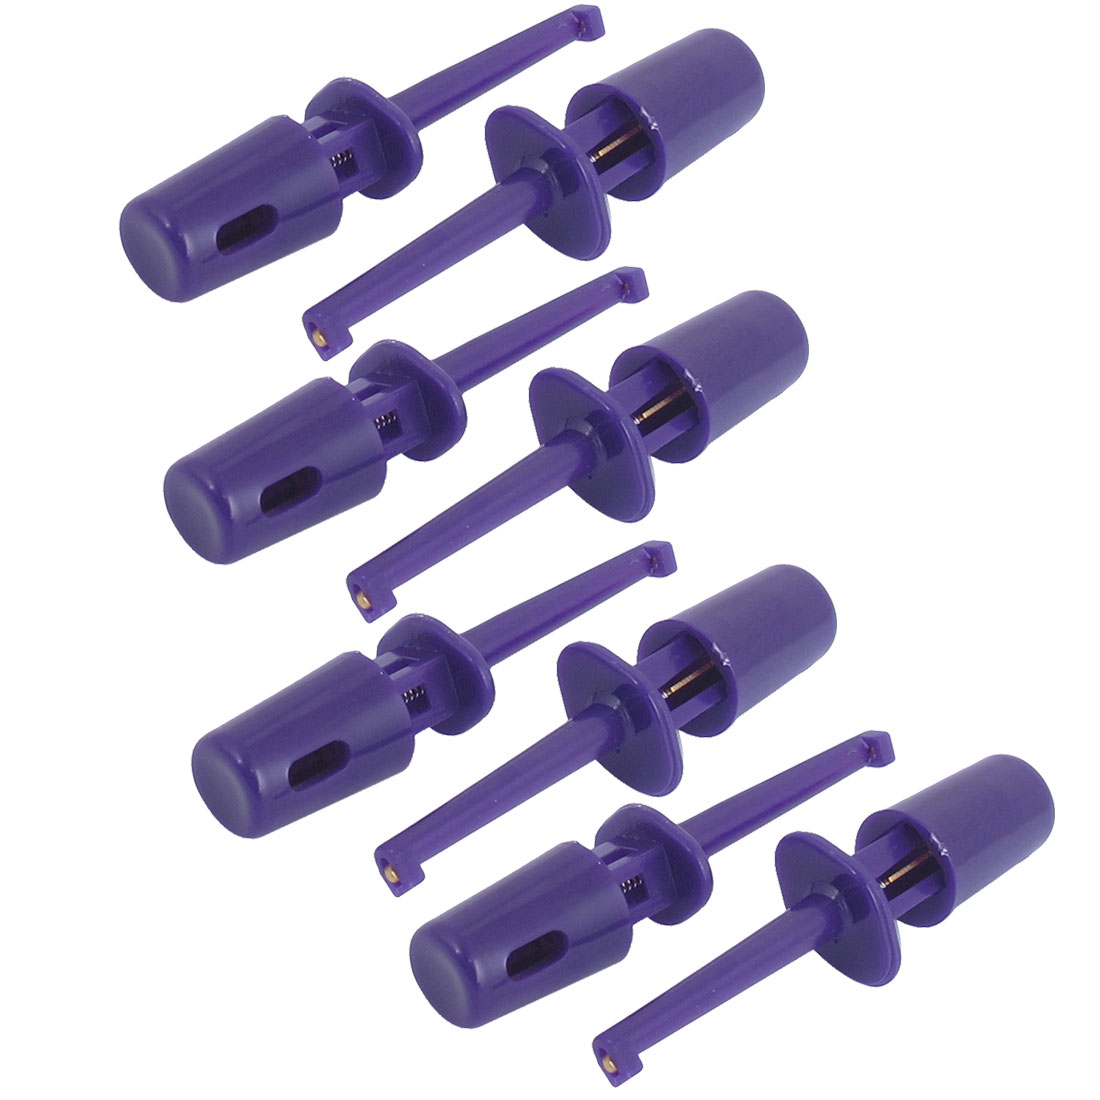 8pcs Plastic Shield Electrical Wire Testing Hook Clip Probes Purple